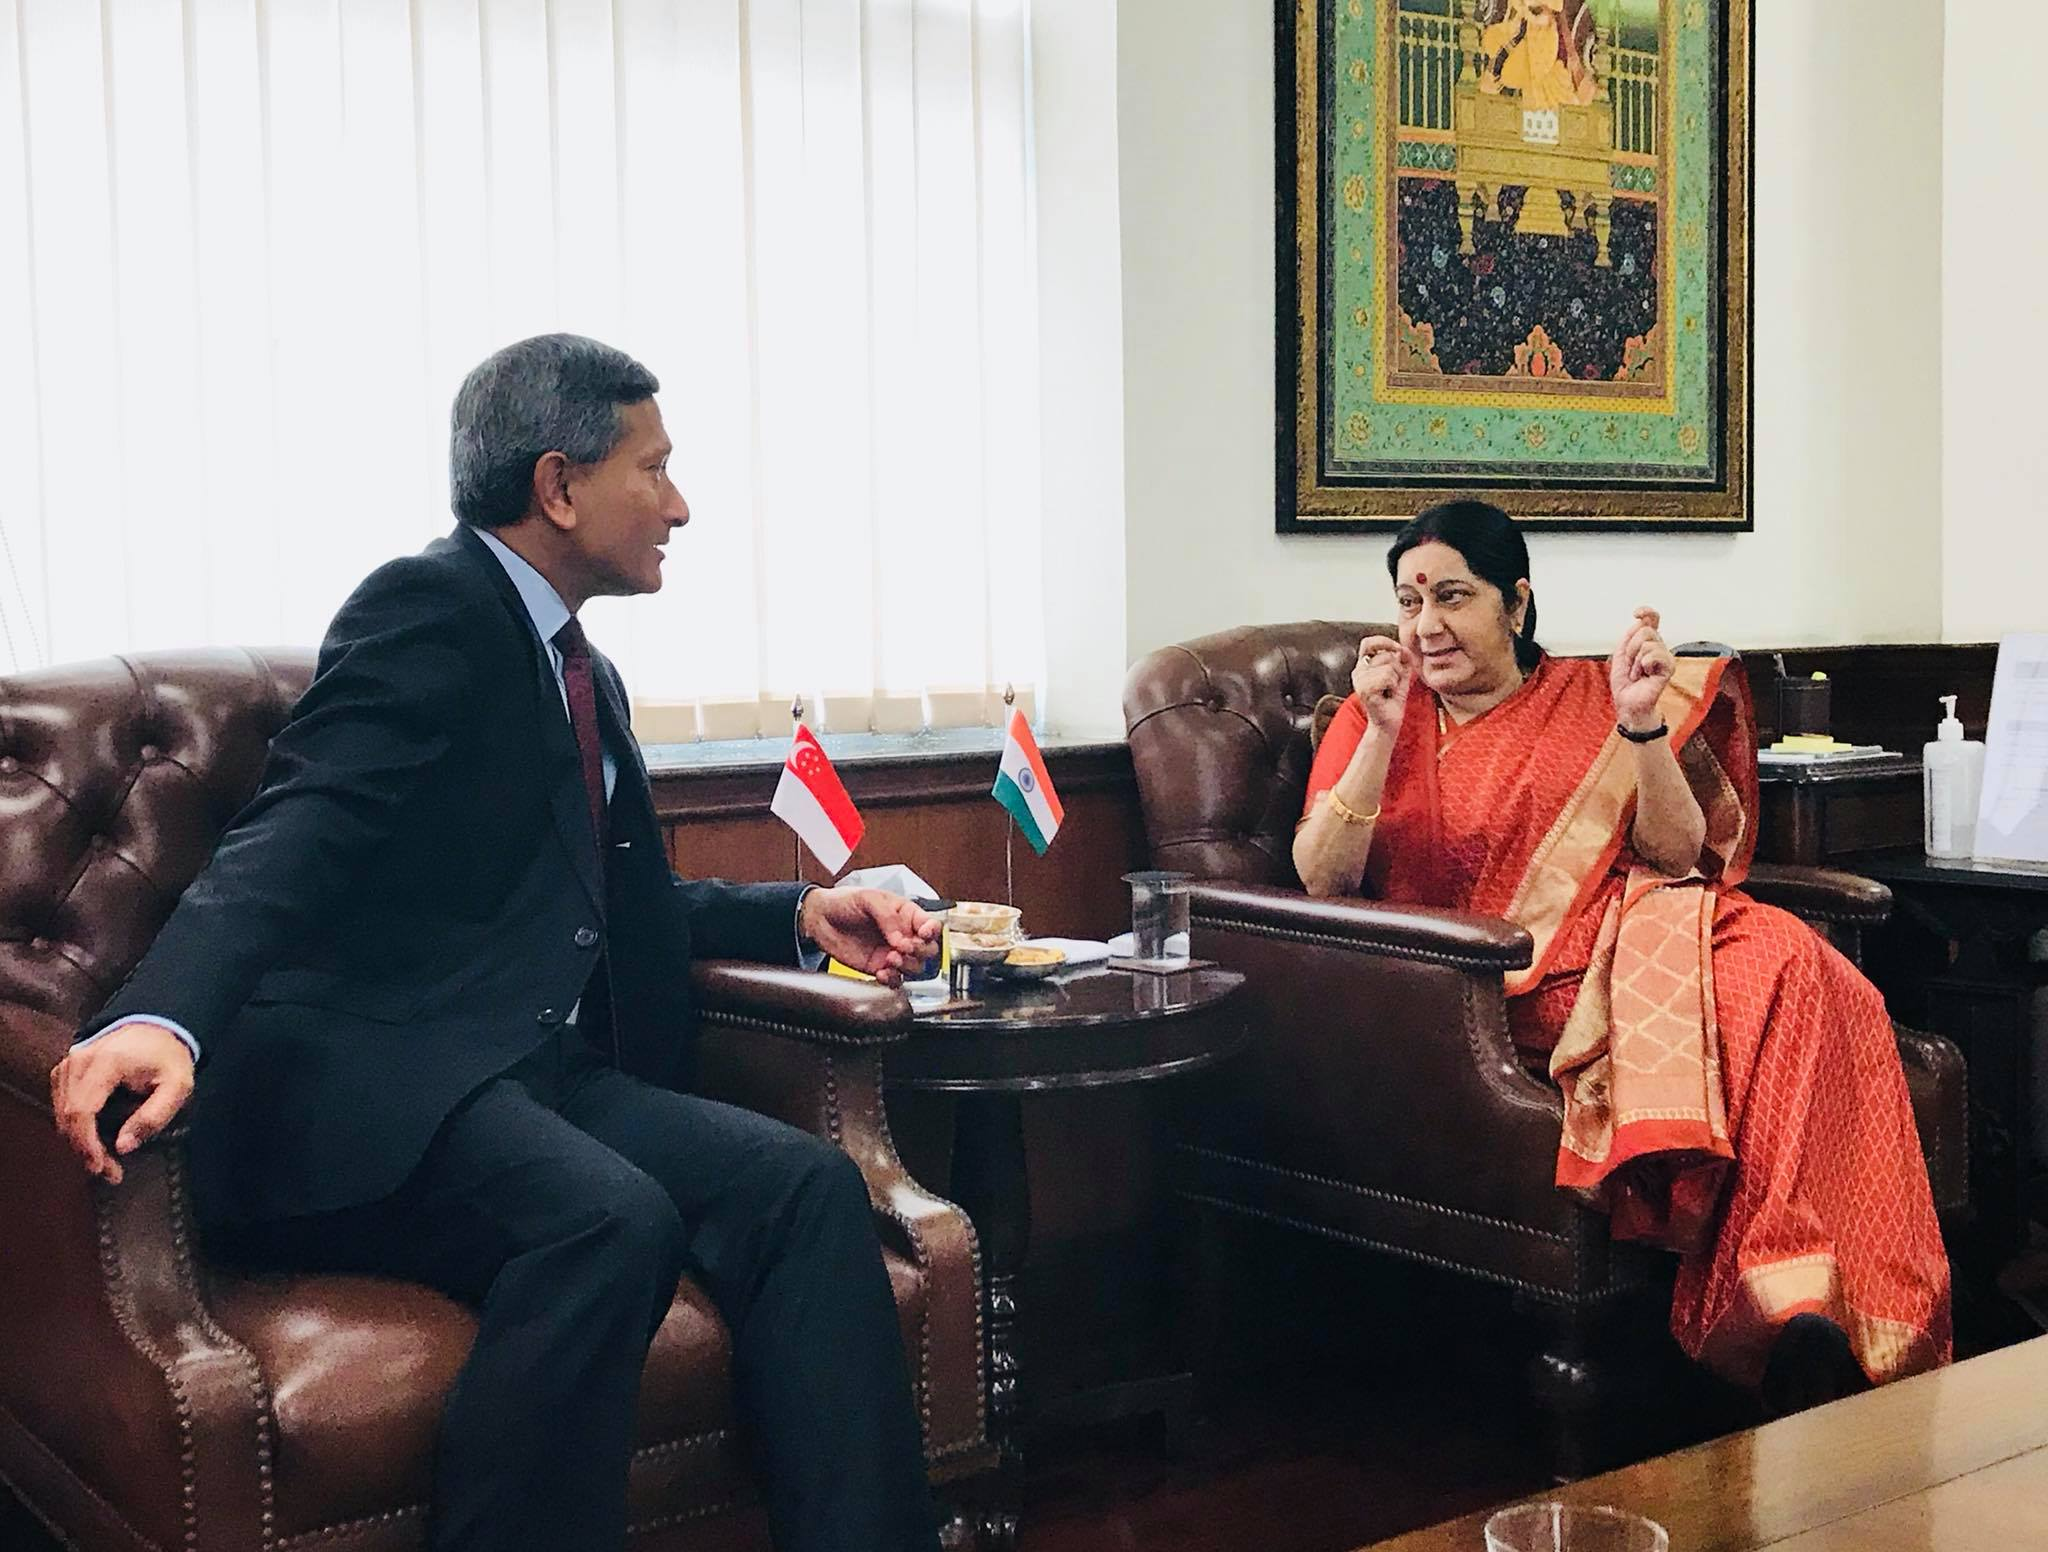 Singapore's Minister for Foreign Affairs Dr Vivian Balakrishnan with Indian External Affairs Minister(EAM) Sushma Swaraj